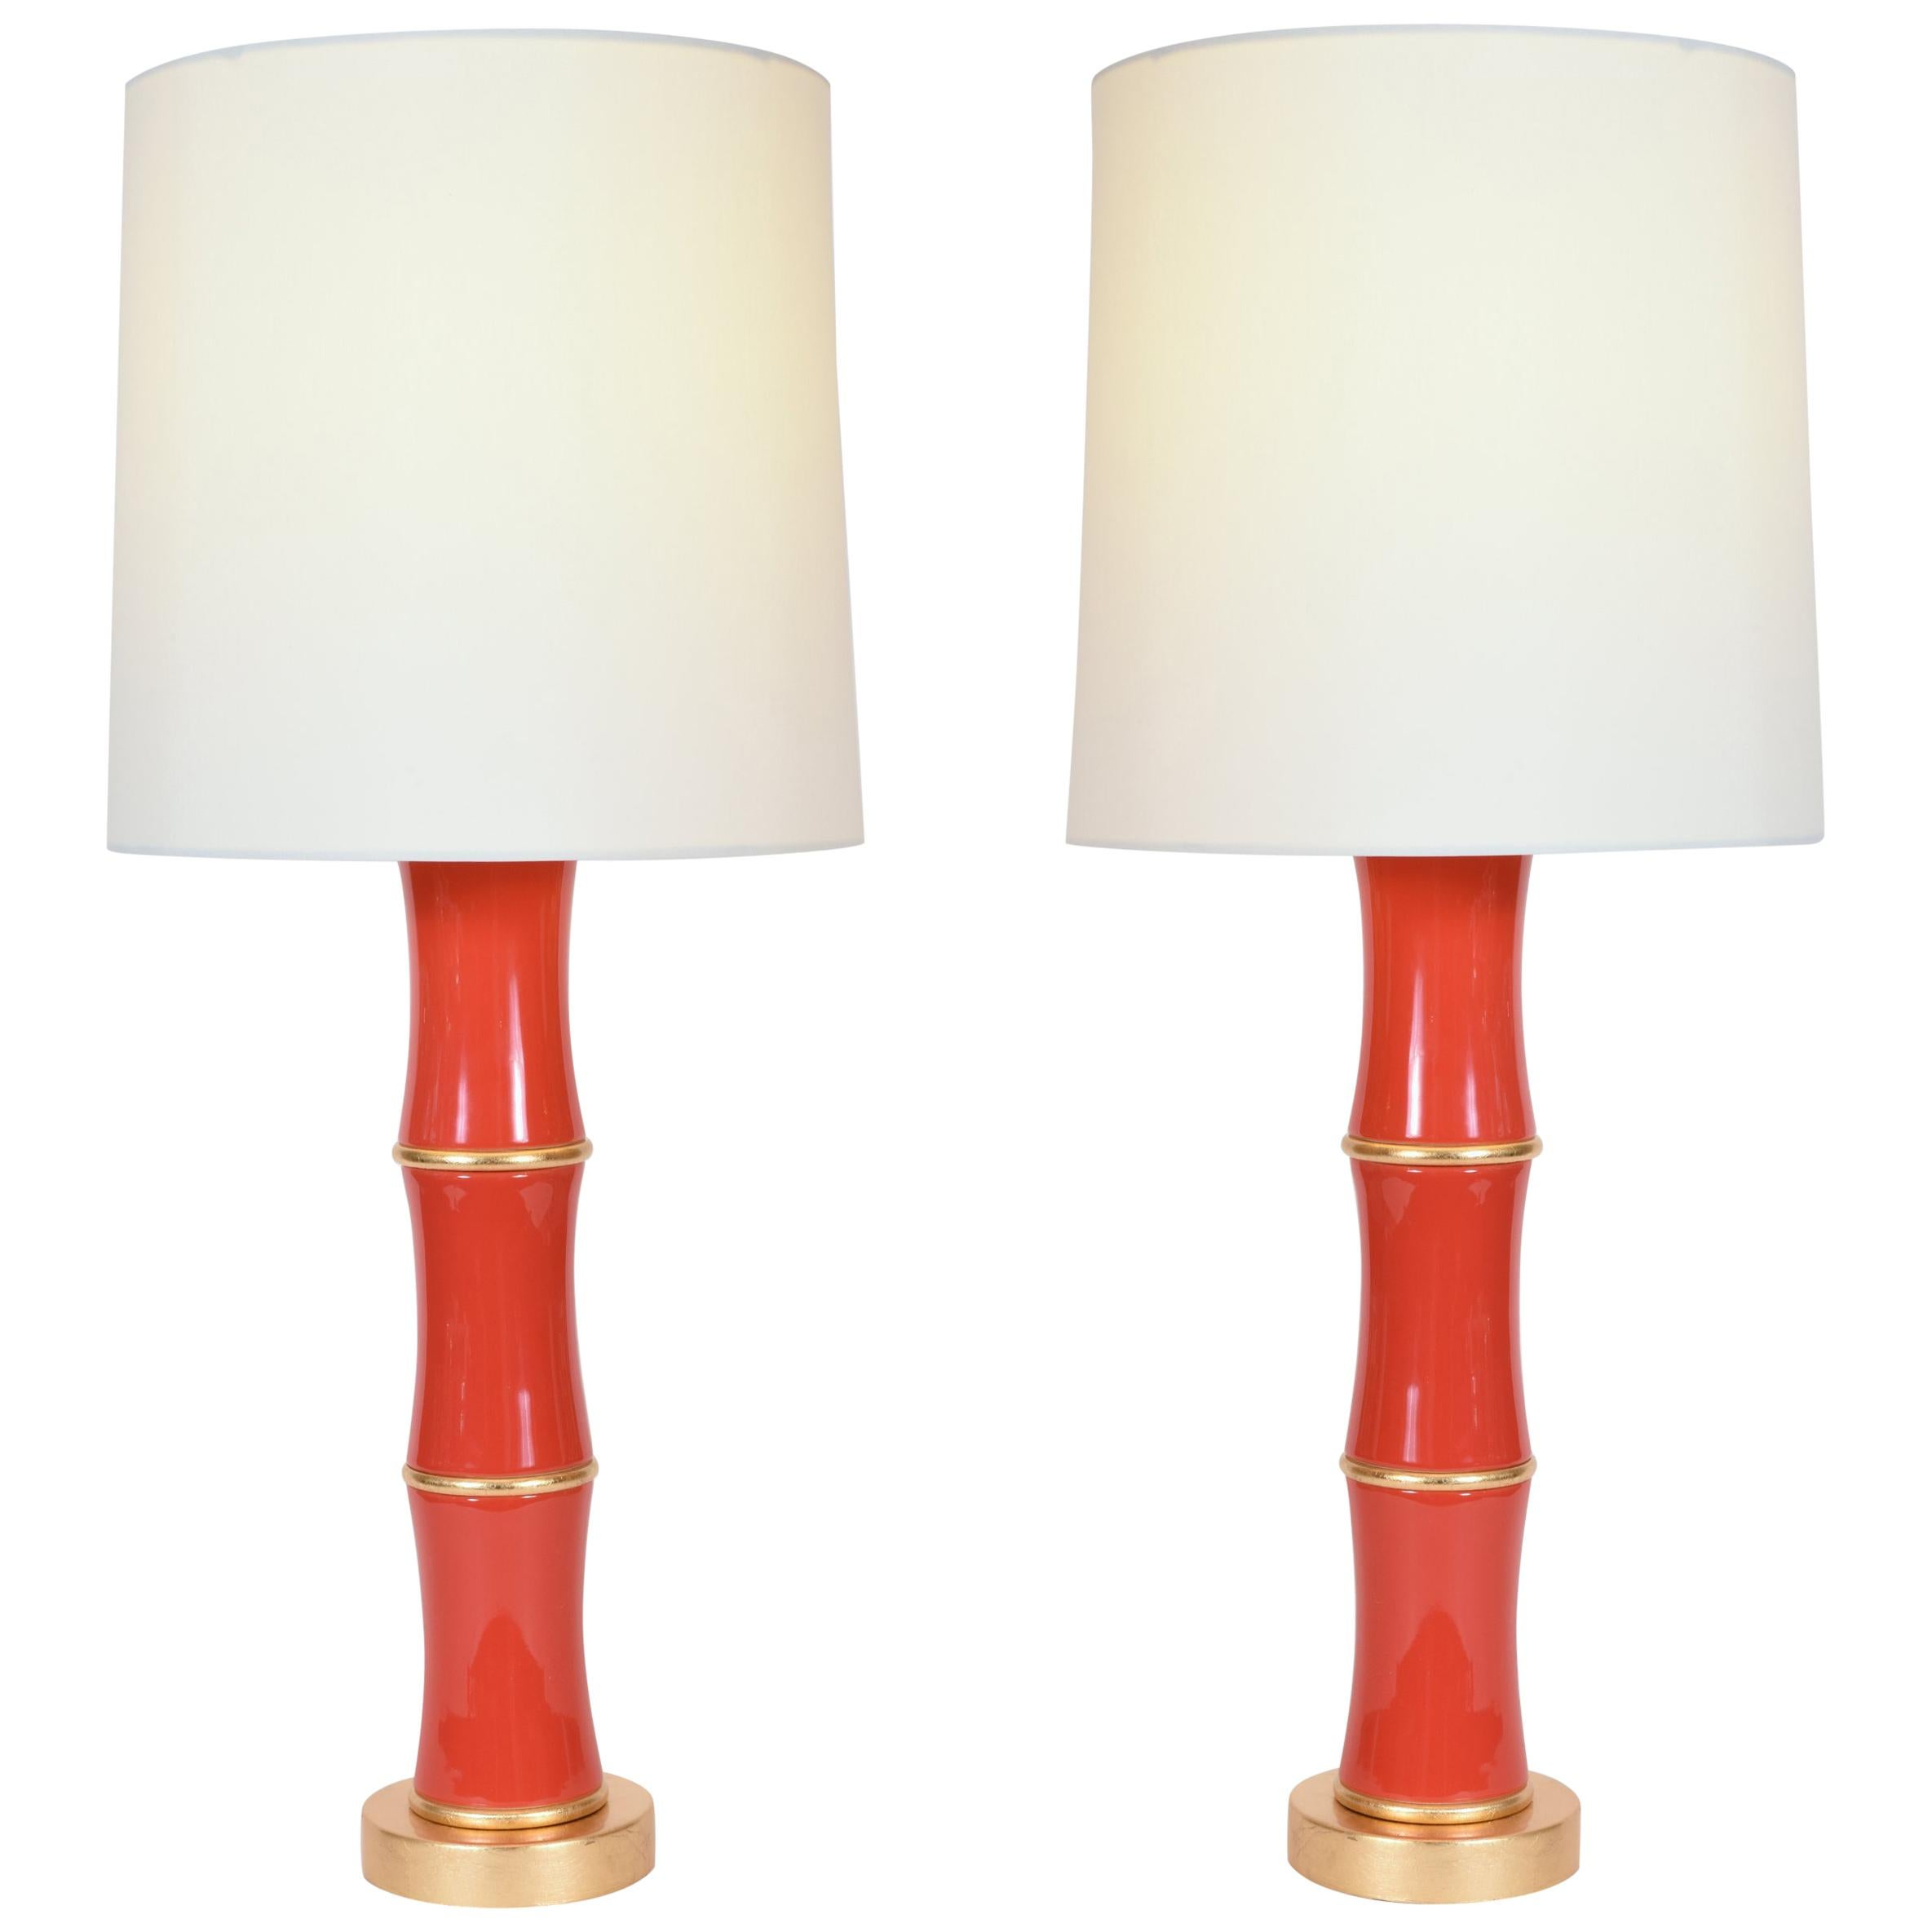 Pair of Orange Porcelain Table Lamp With Gold Wood Base